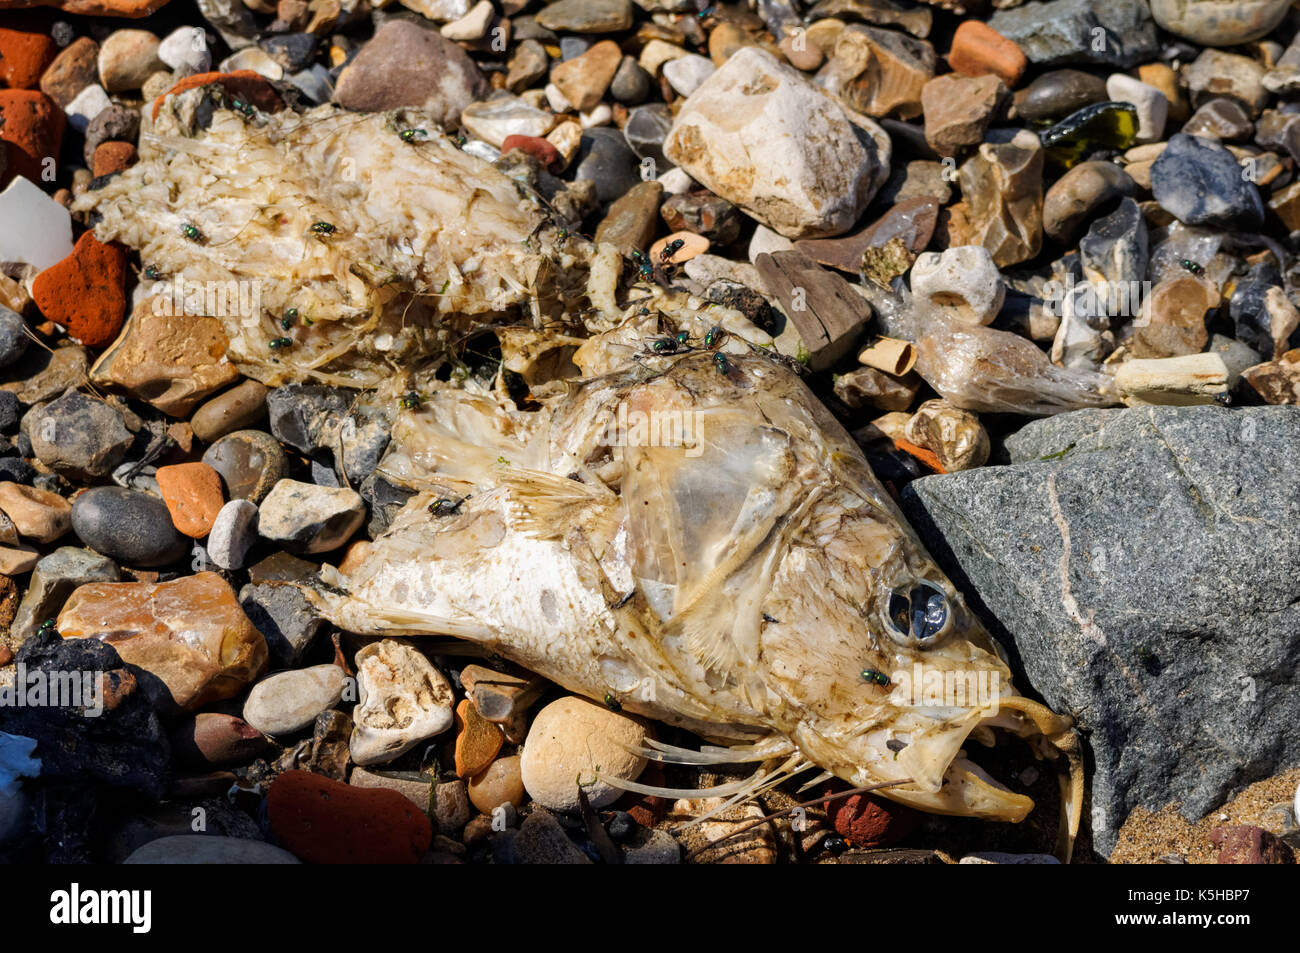 Rotten fish on the bank of the River Thames, London England United Kingdom UK - Stock Image